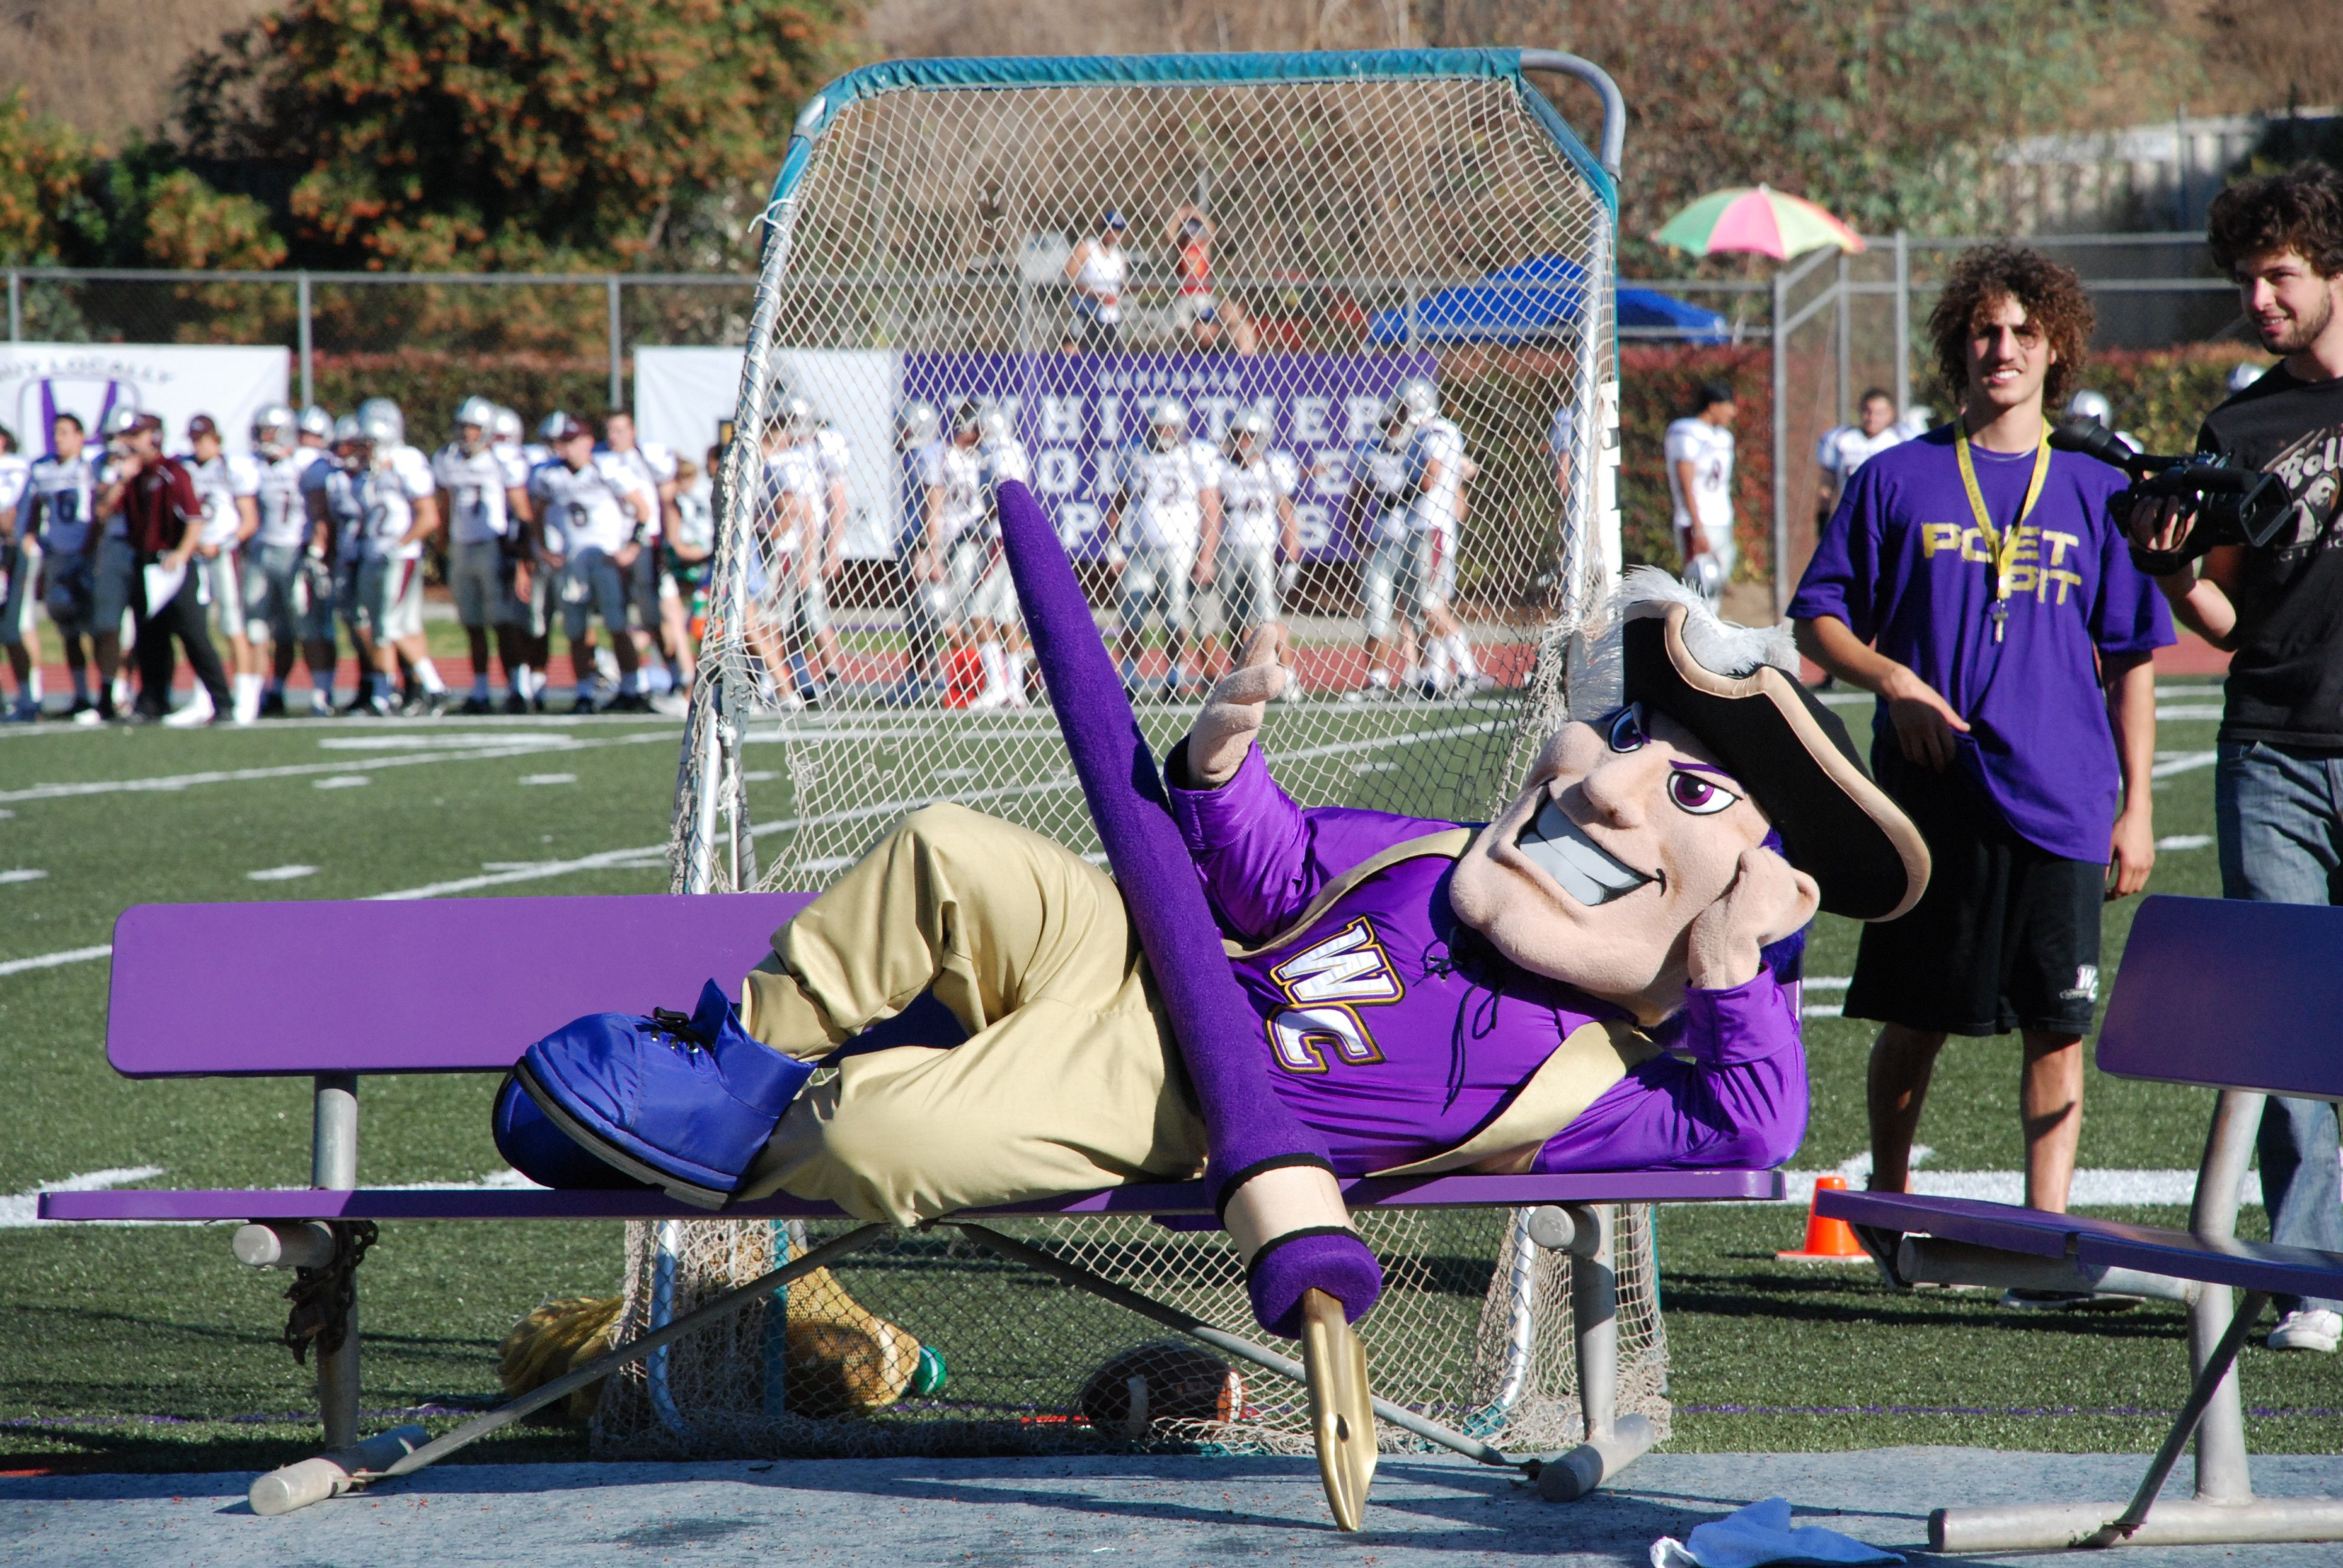 Johnny poet getting the crowd ready at a football game